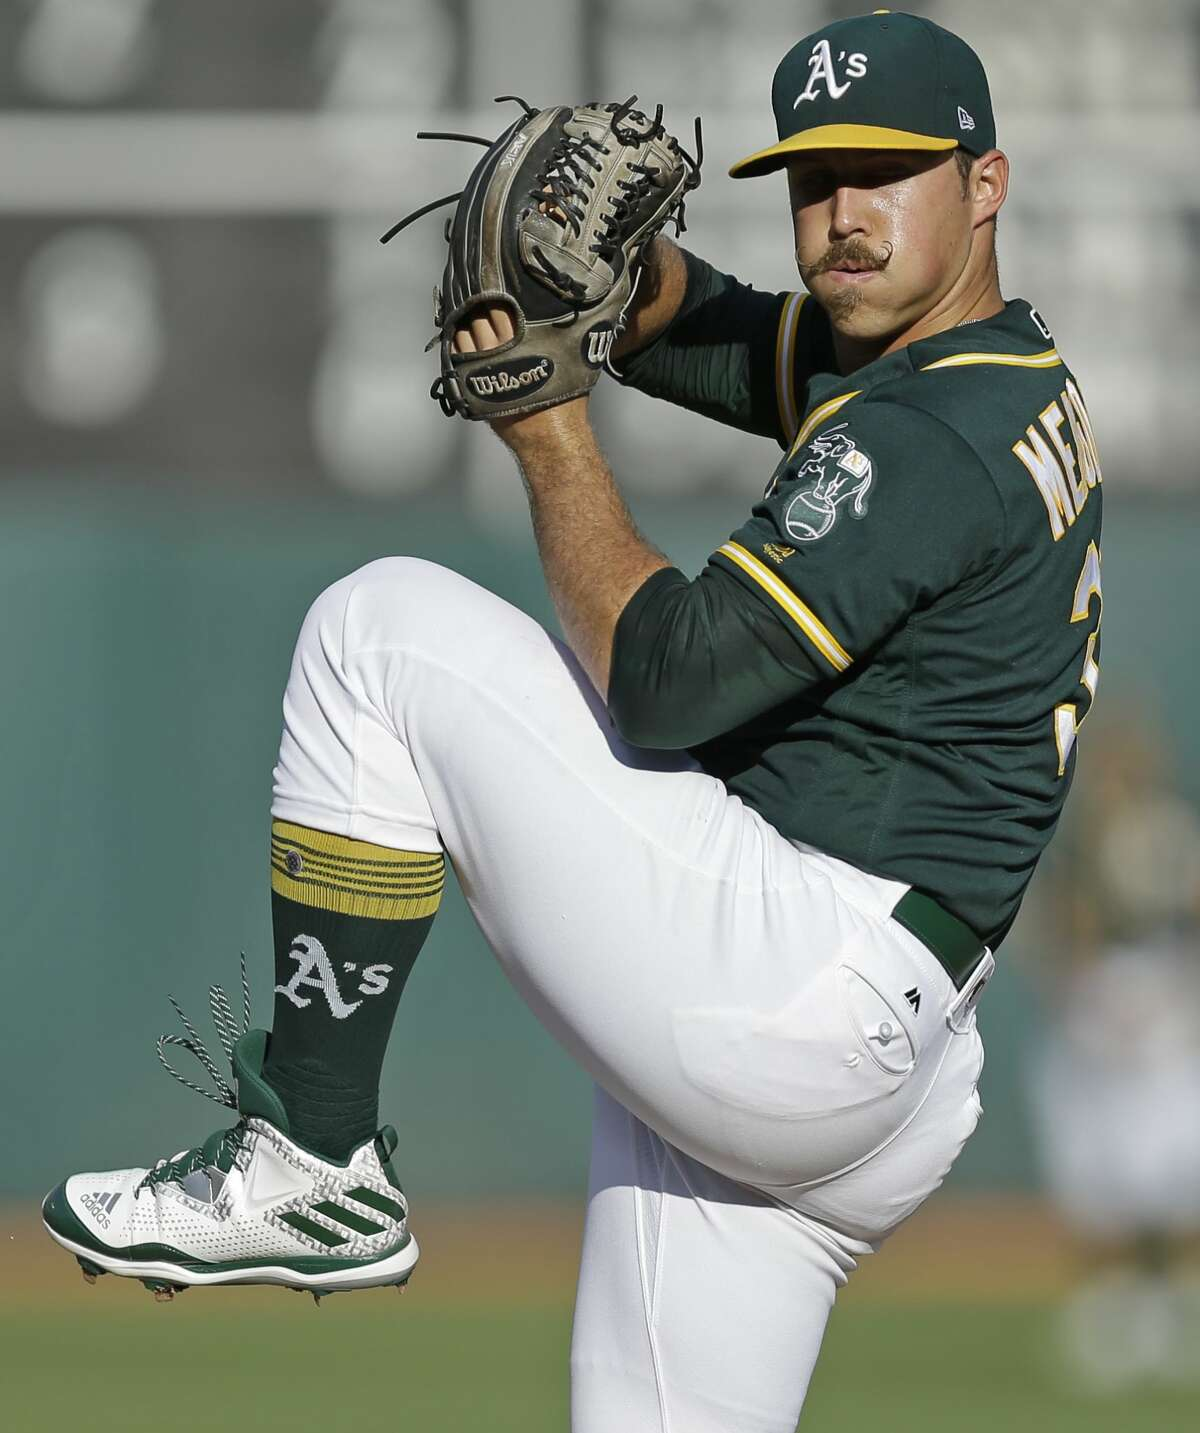 Oakland Athletics pitcher Daniel Mengden works against the Houston Astros in the first inning of the second baseball game of a doubleheader on Saturday, Sept. 9, 2017, in Oakland, Calif. (AP Photo/Ben Margot)